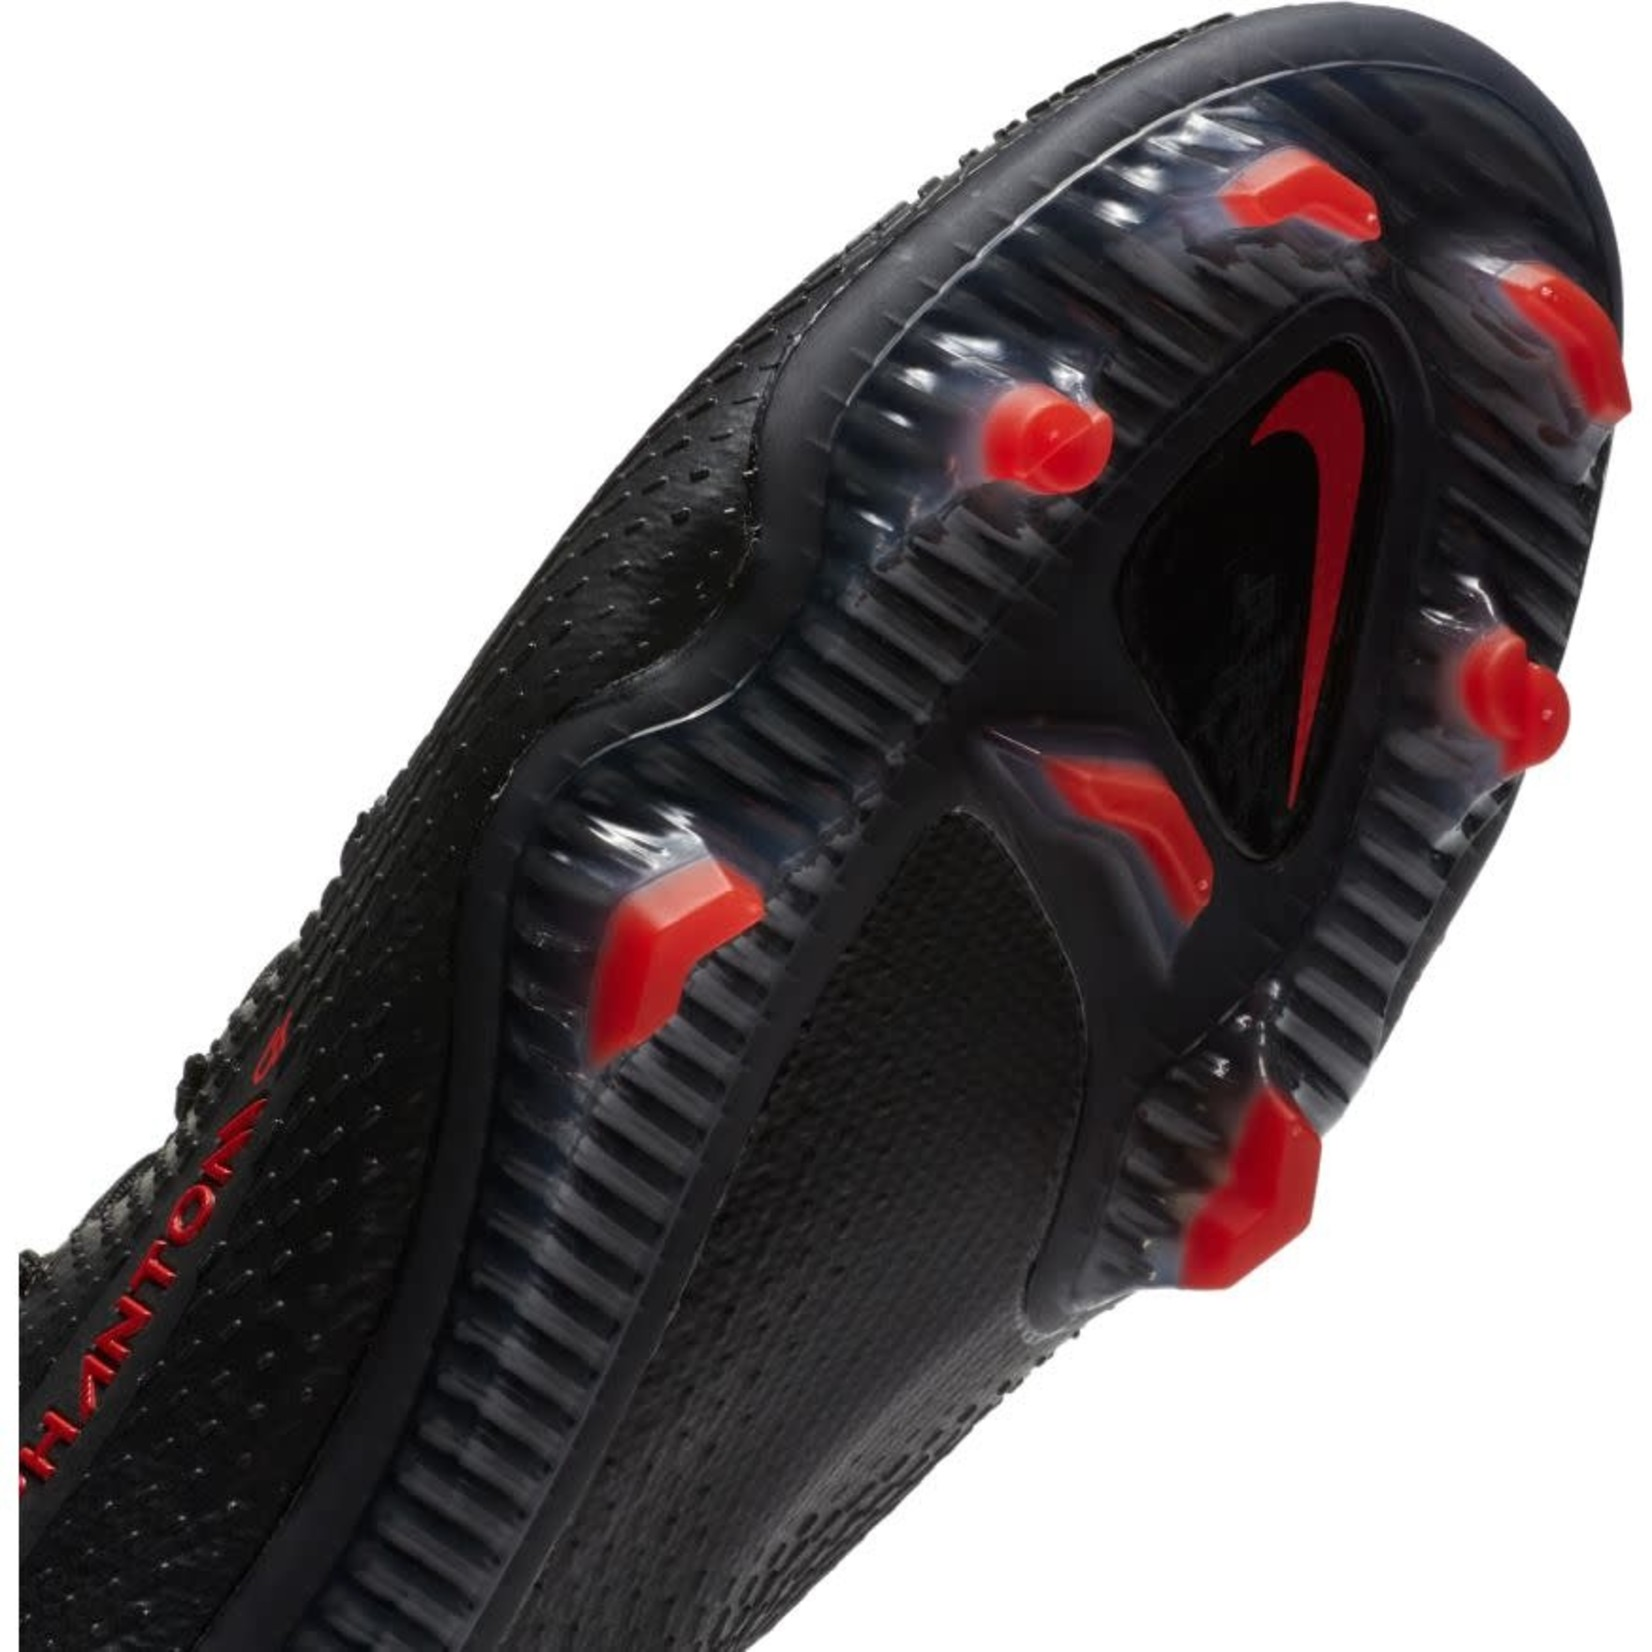 NIKE PHANTOM GT ELITE DF FG (BLACK/RED)